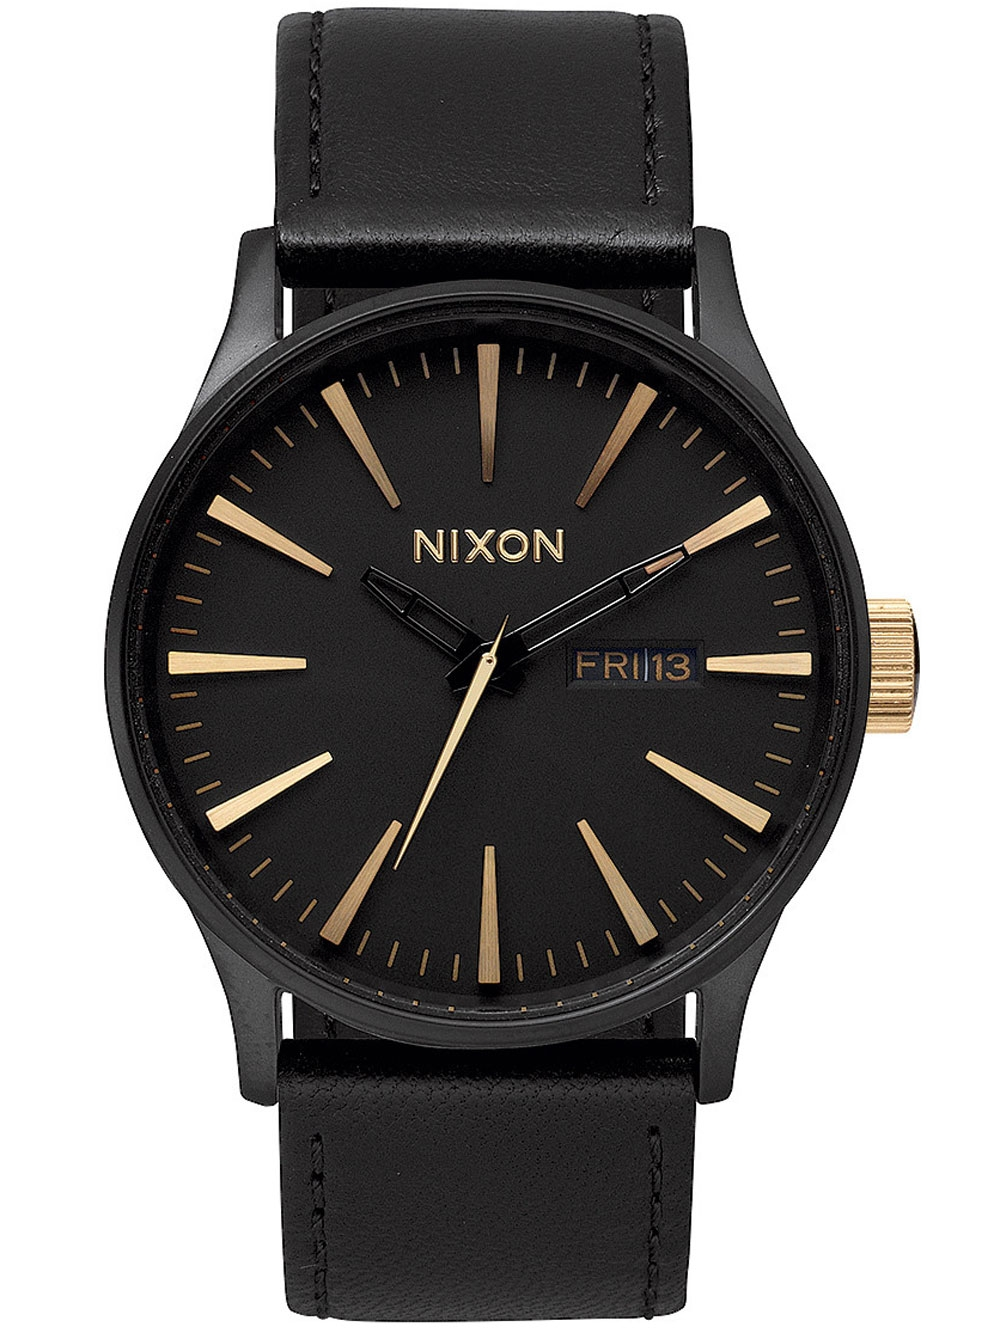 uhren chrono12 nixon a105 1041 sentry leather matte black gold 42mm 10atm. Black Bedroom Furniture Sets. Home Design Ideas